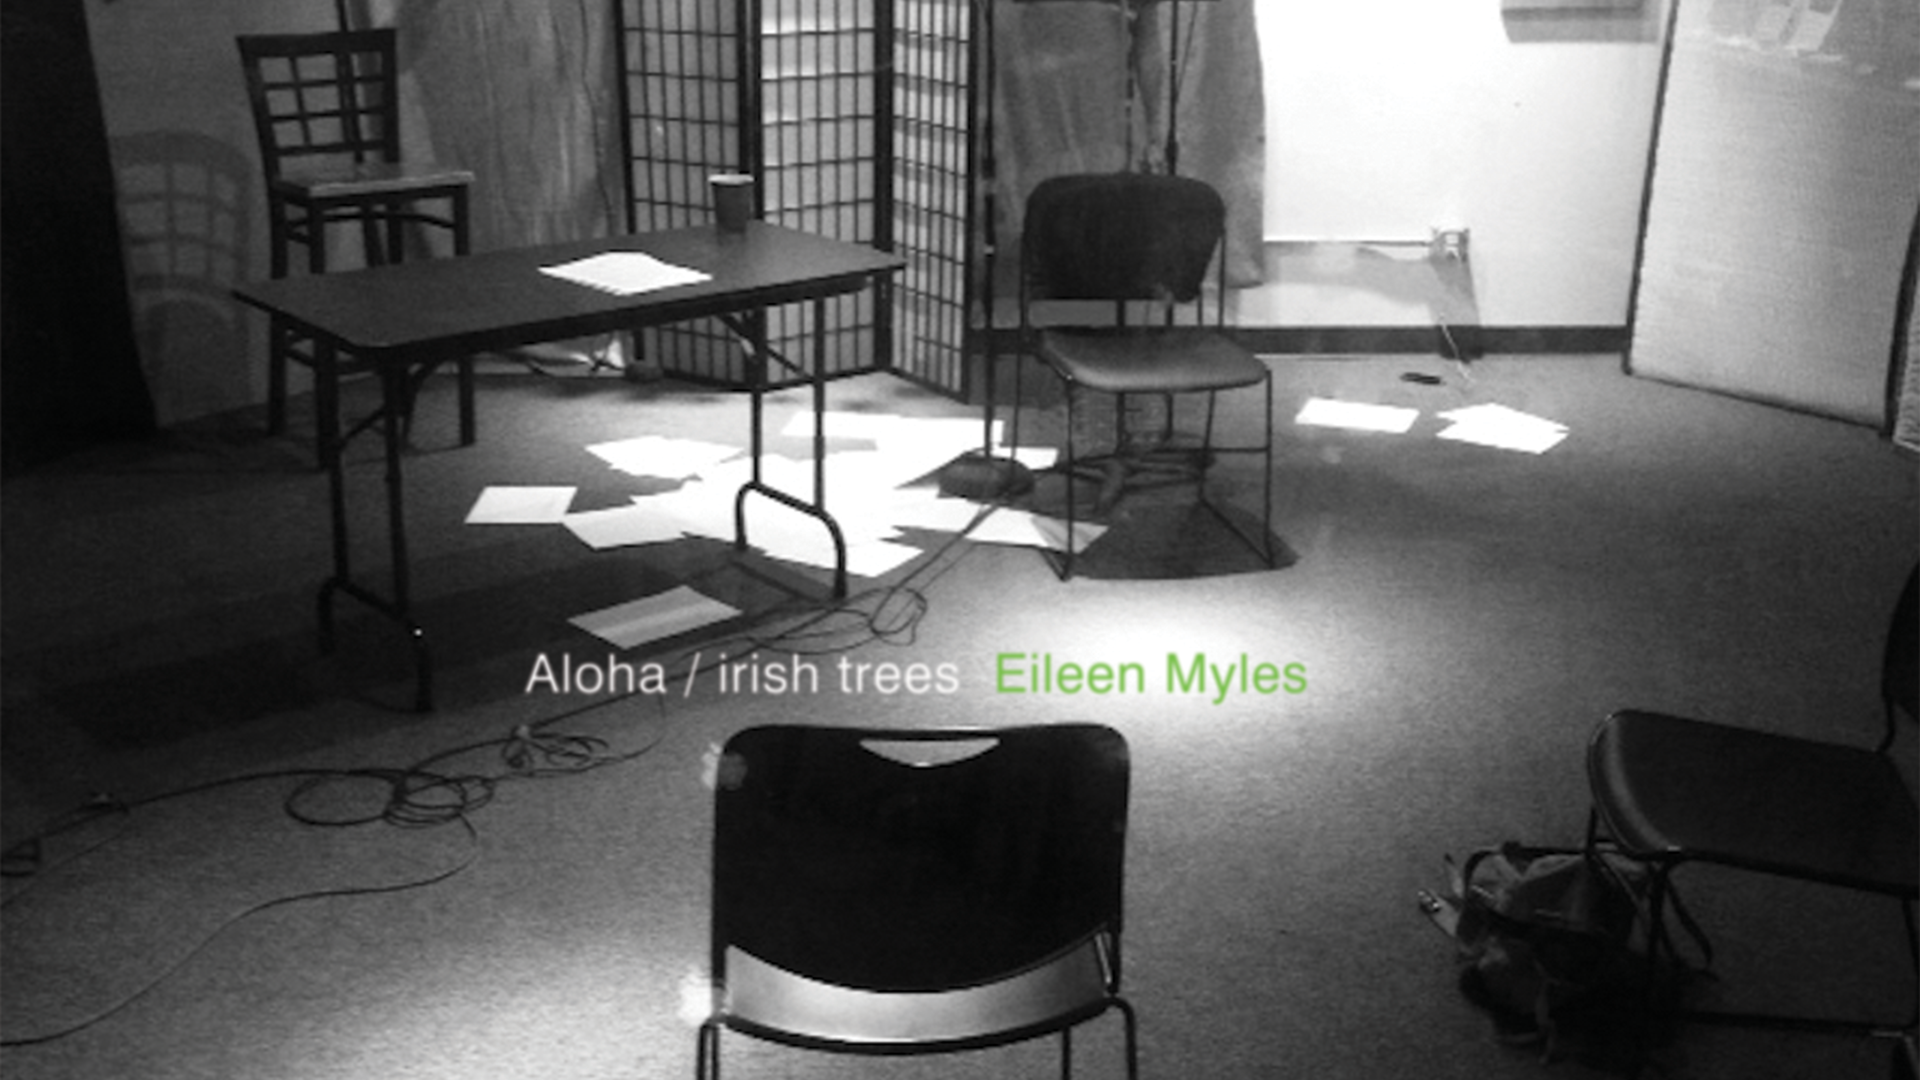 Album cover of Eileen Myles' ALOHA/IRISH TREES; links to news story Wax Poetic: How Fonograf Editions Is Bringing Poetry Back to Vinyl